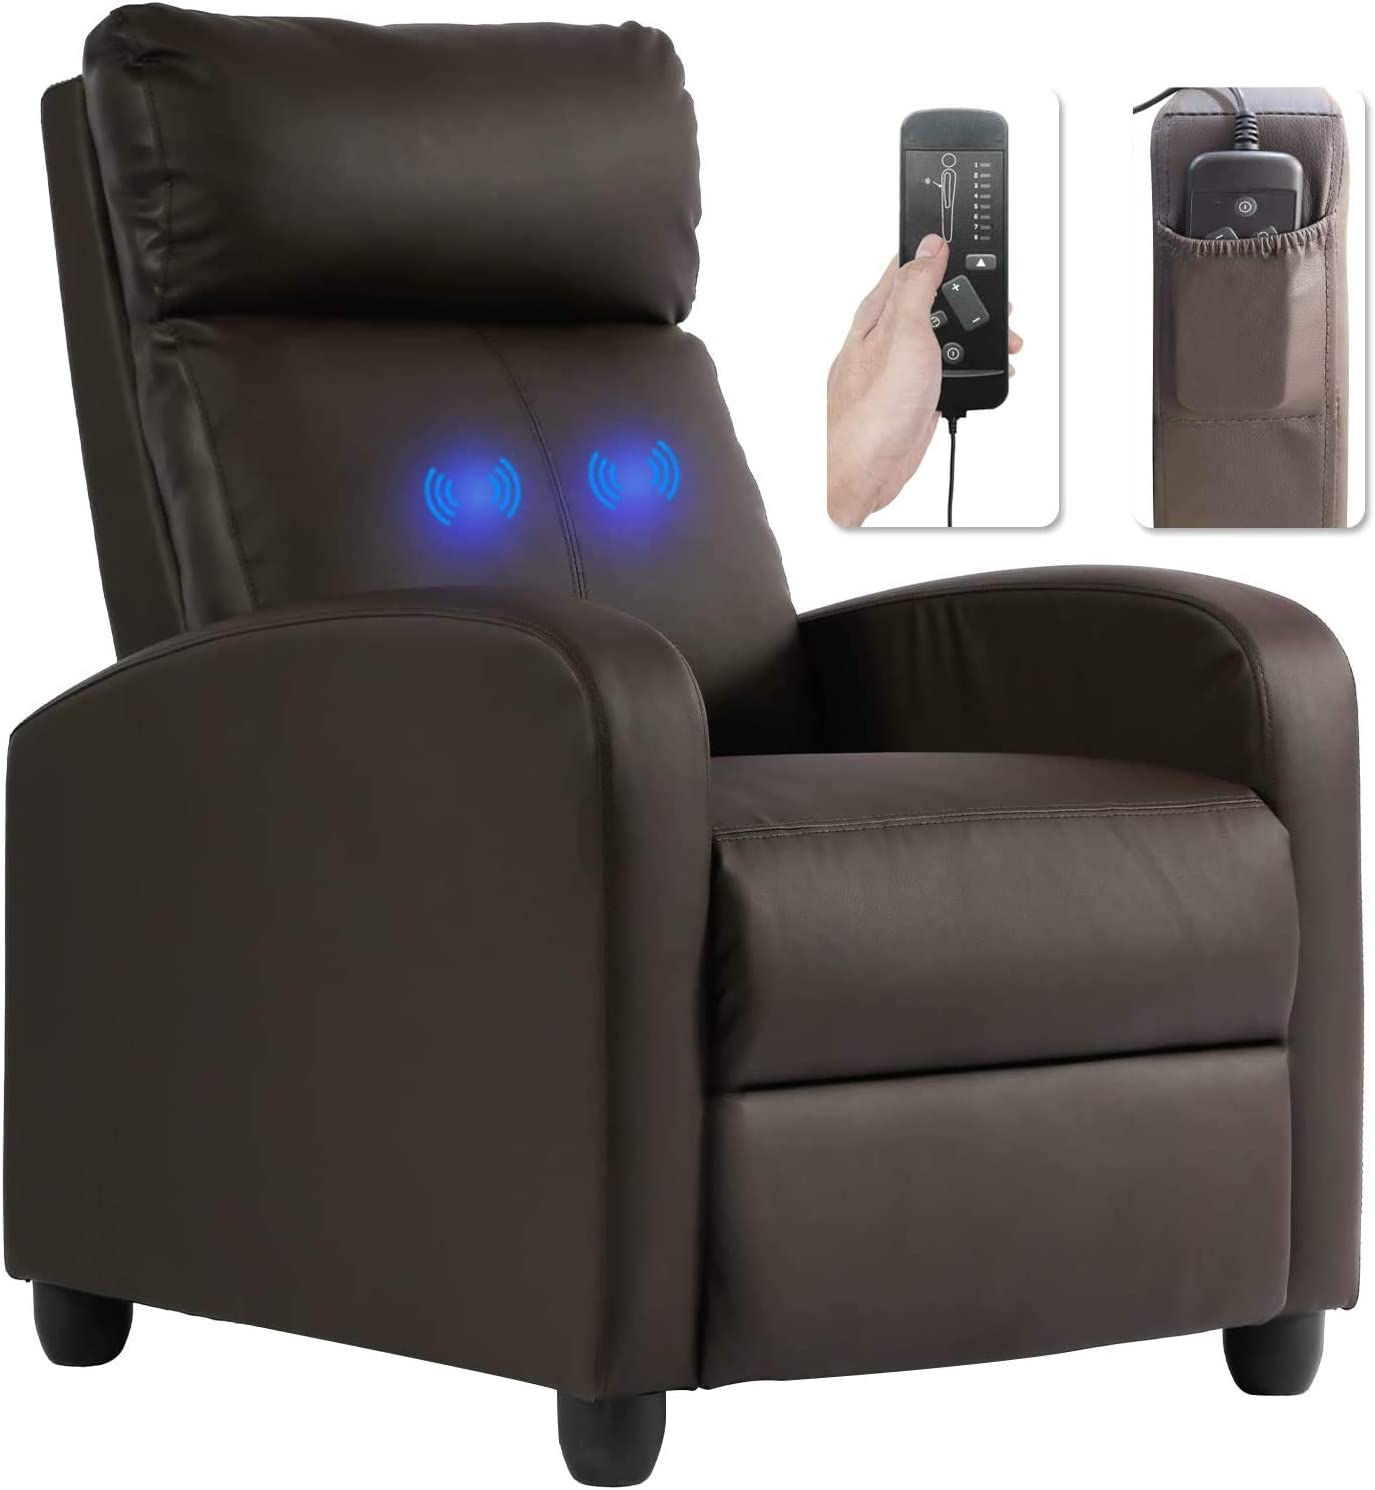 Best living room chair: Recliner Chair Leather Massage Sofa Wing Back Single Home Theater Seating Reading Chair Living Room Reclining Sofa